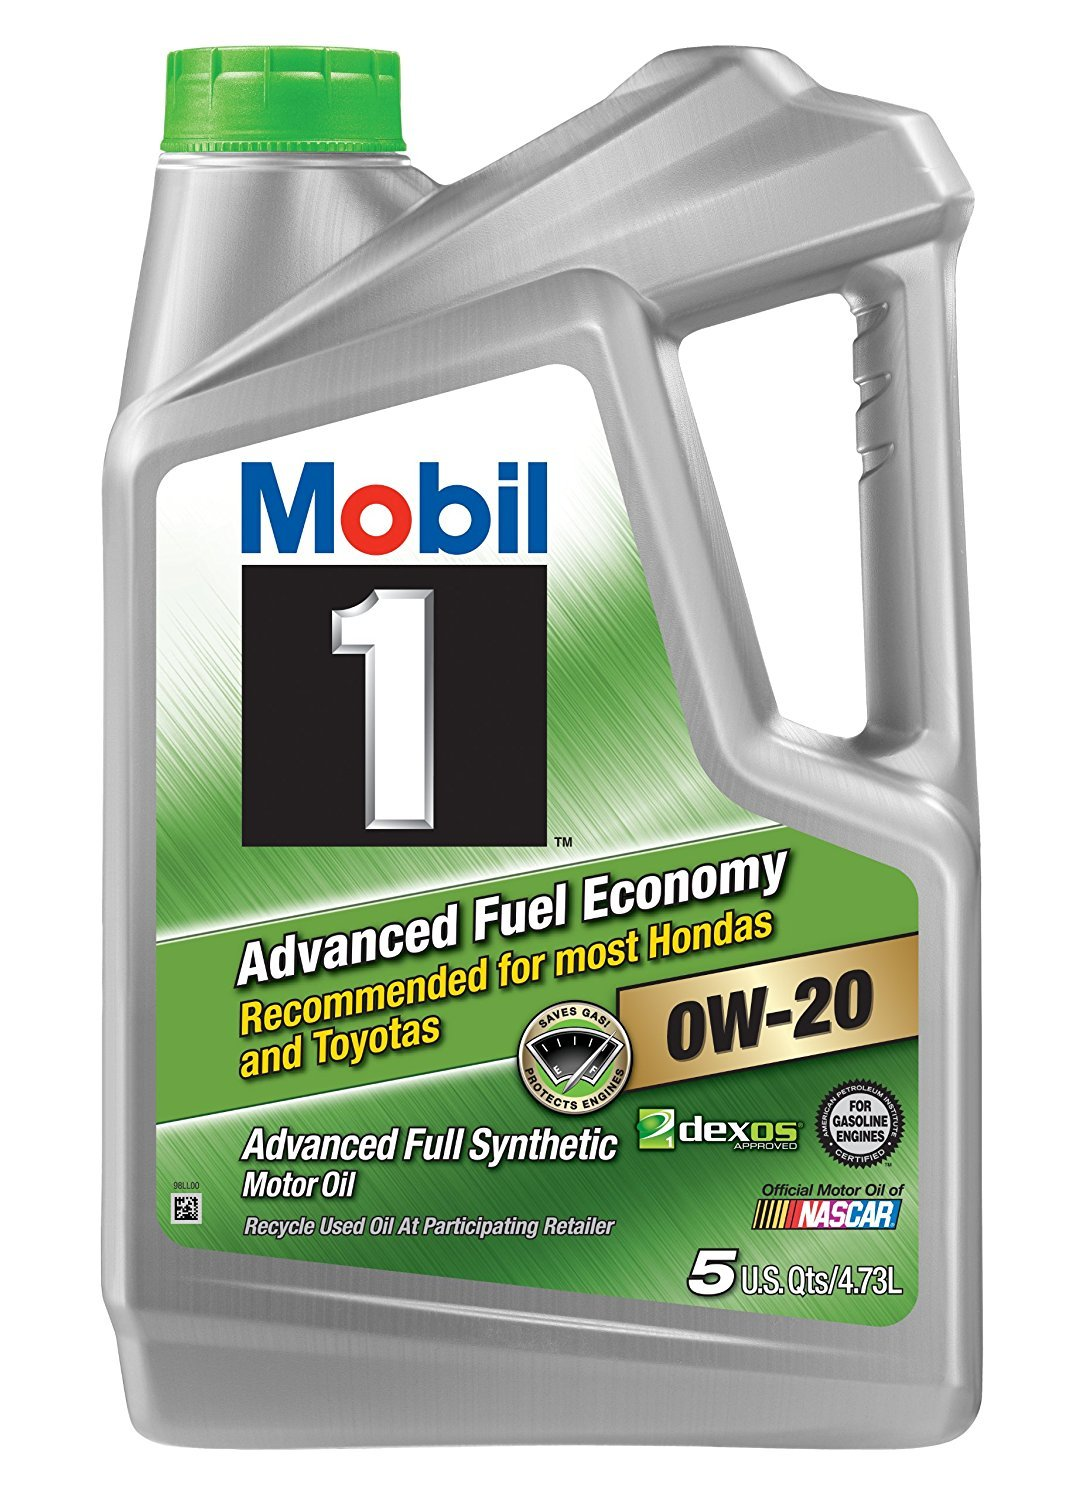 Mobil 1 120758 Advanced Full Synthetic Motor Oil for 0W-20 5, 4.73L-3 Pack by Mobil 1